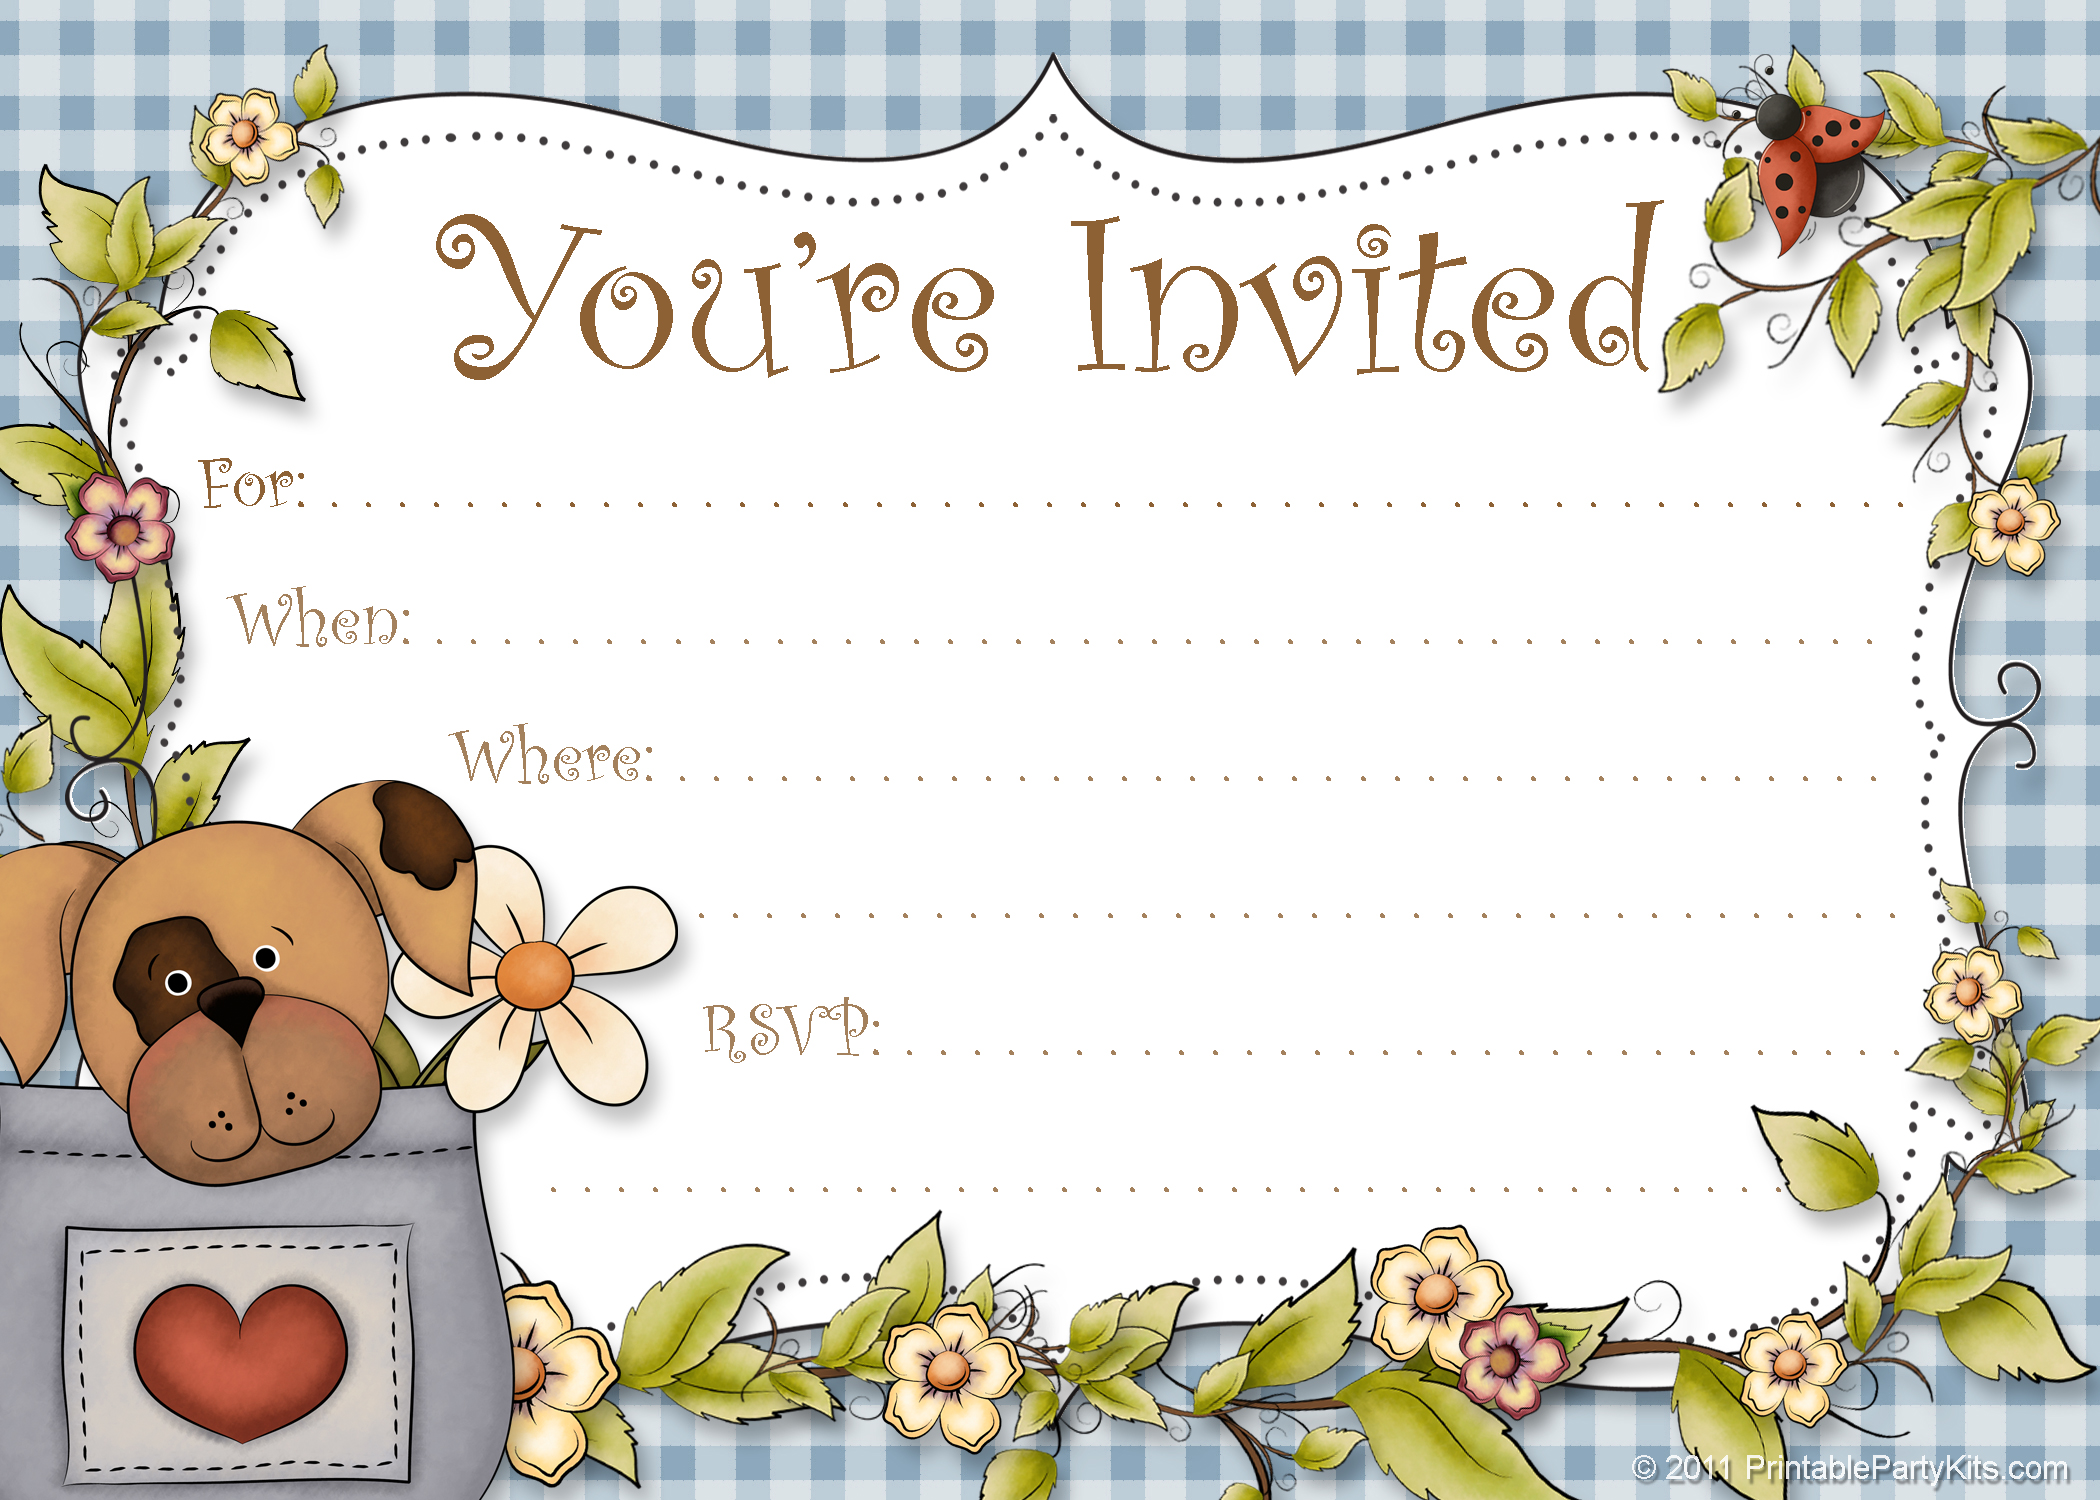 dog birthday invitations free printable ; free-printable-boy-birthday-invitations_free-printable-boy-birthday-invitations-hatch-urbanskrip-on-cat-and-puppy-dog-invitation-printable-or-printed